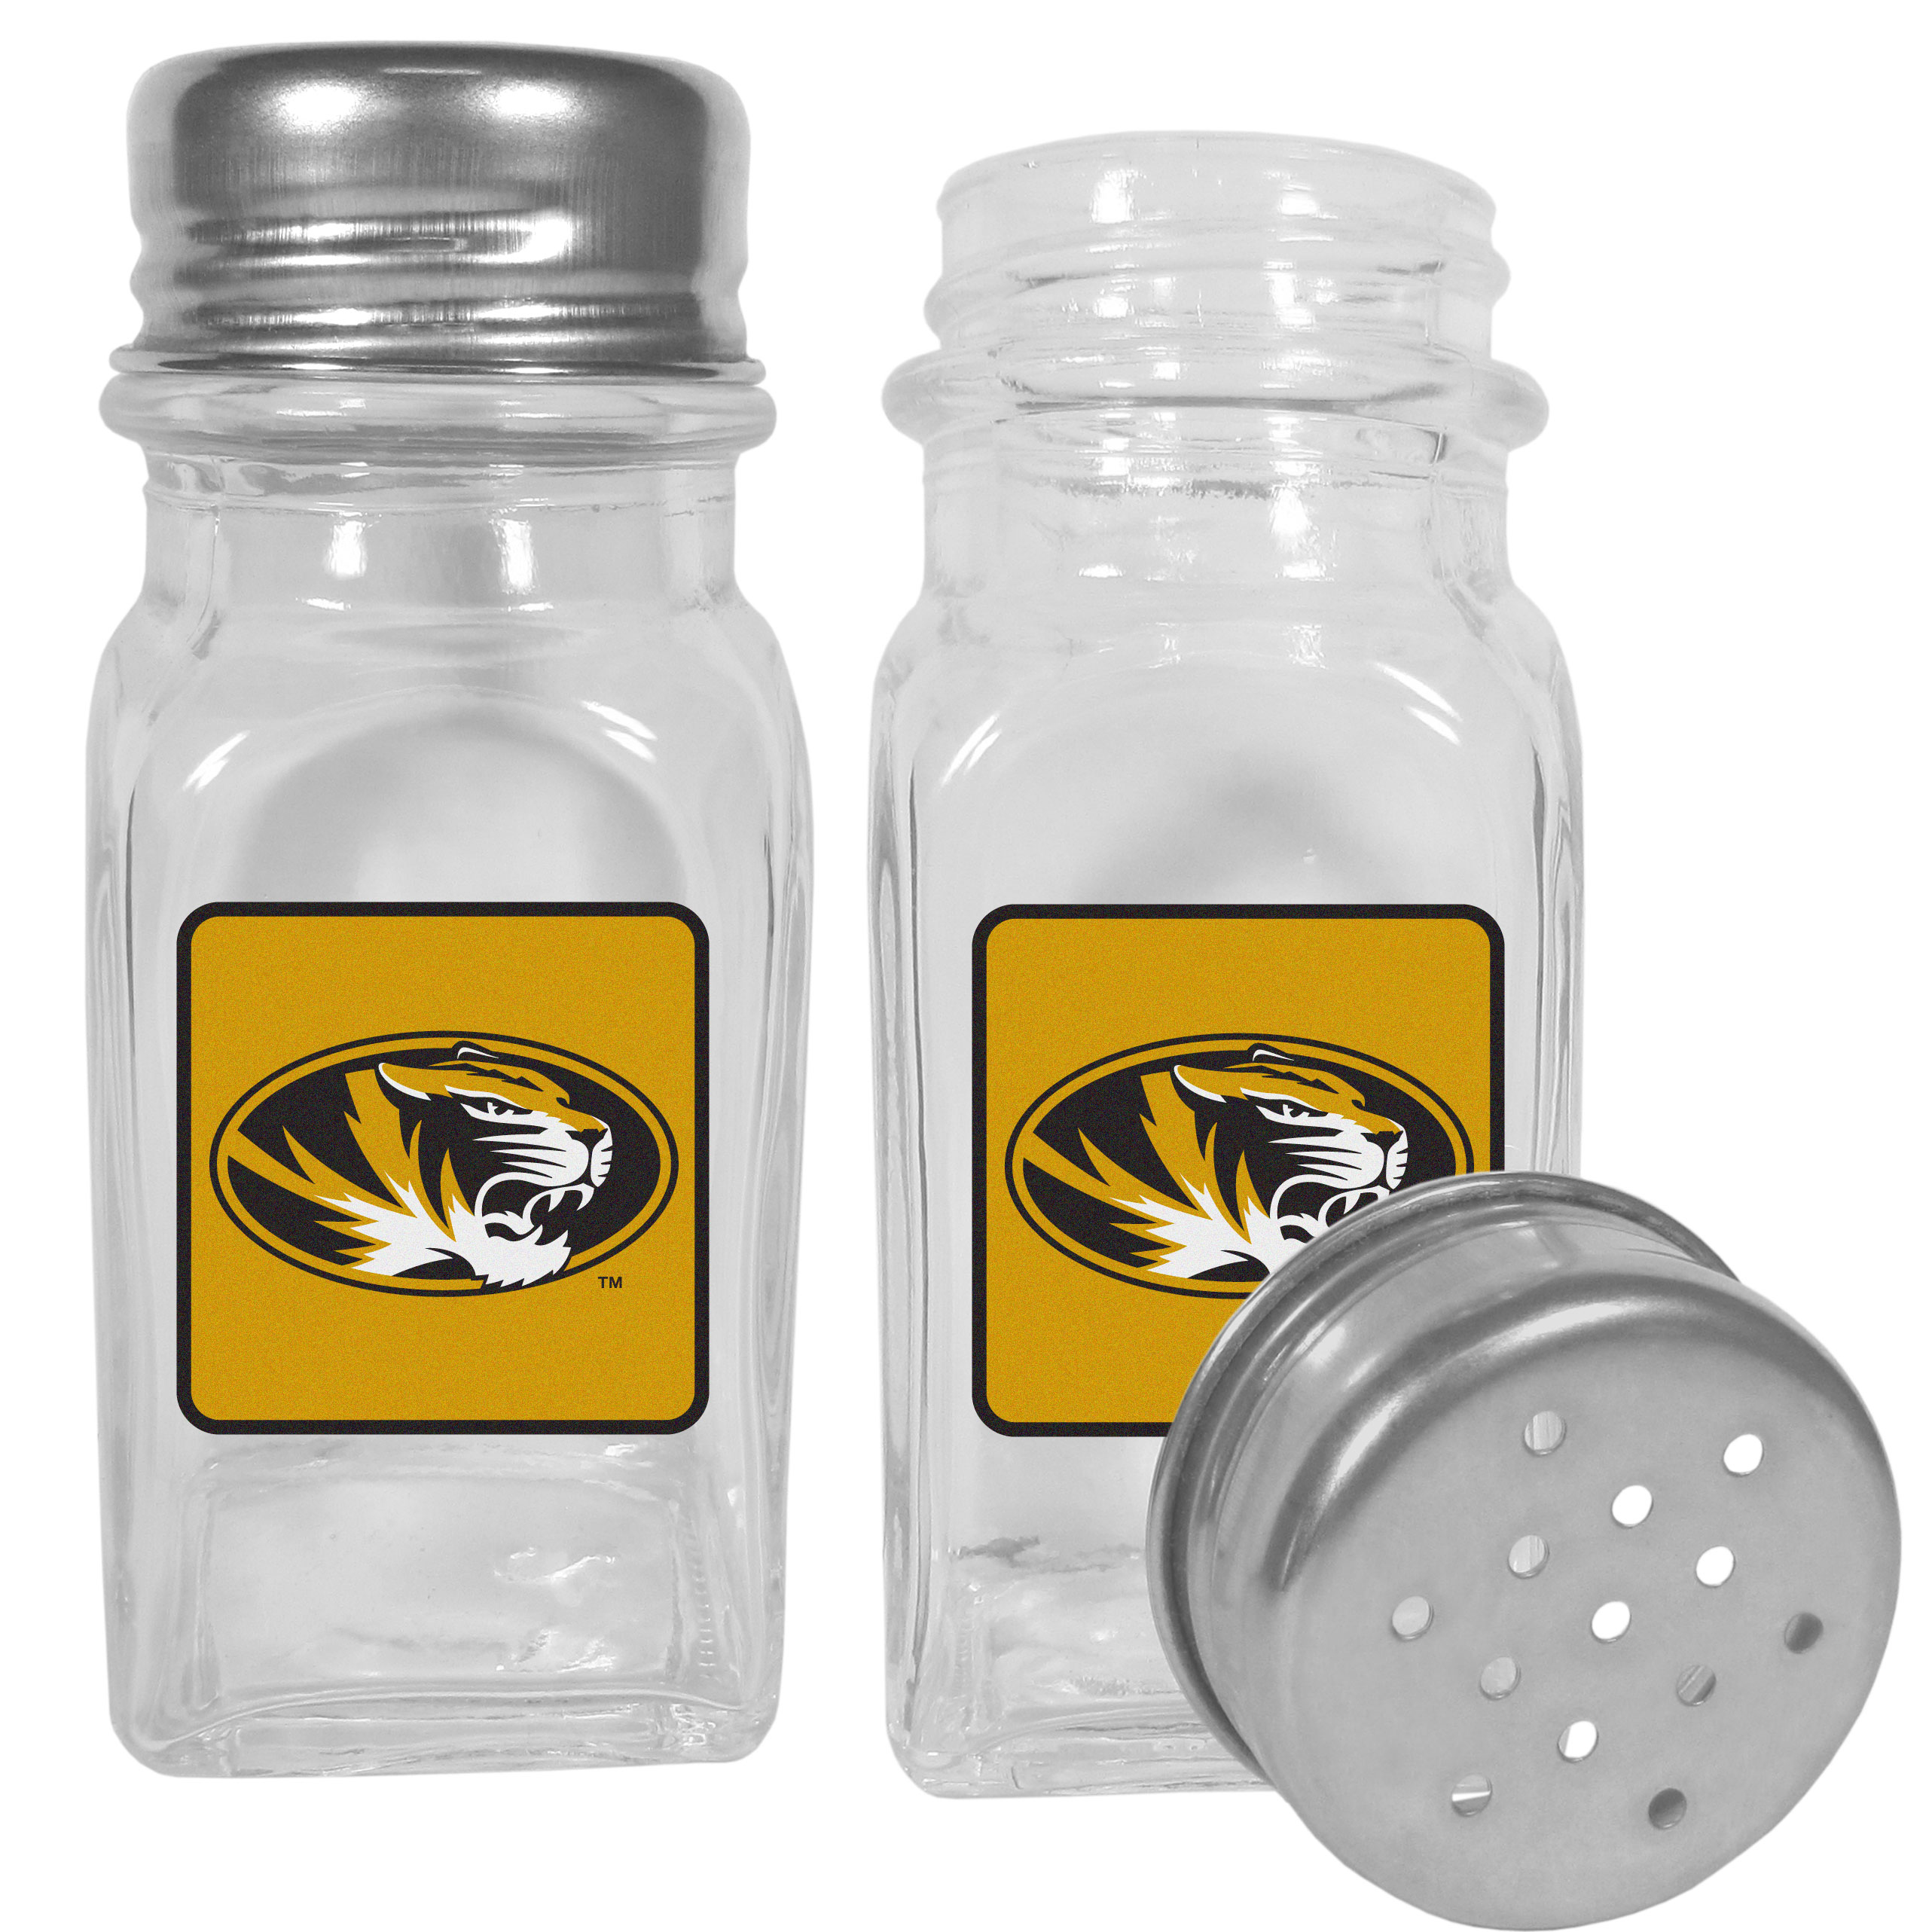 Missouri Tigers Graphics Salt and Pepper Shaker - No tailgate party is complete without your Missouri Tigers salt & pepper shakers featuring bright team logos. The diner replica salt and pepper shakers are glass with screw top lids. These team shakers are a great grill accessory whether you are barbecuing on the patio, picnicing or having a game day party.